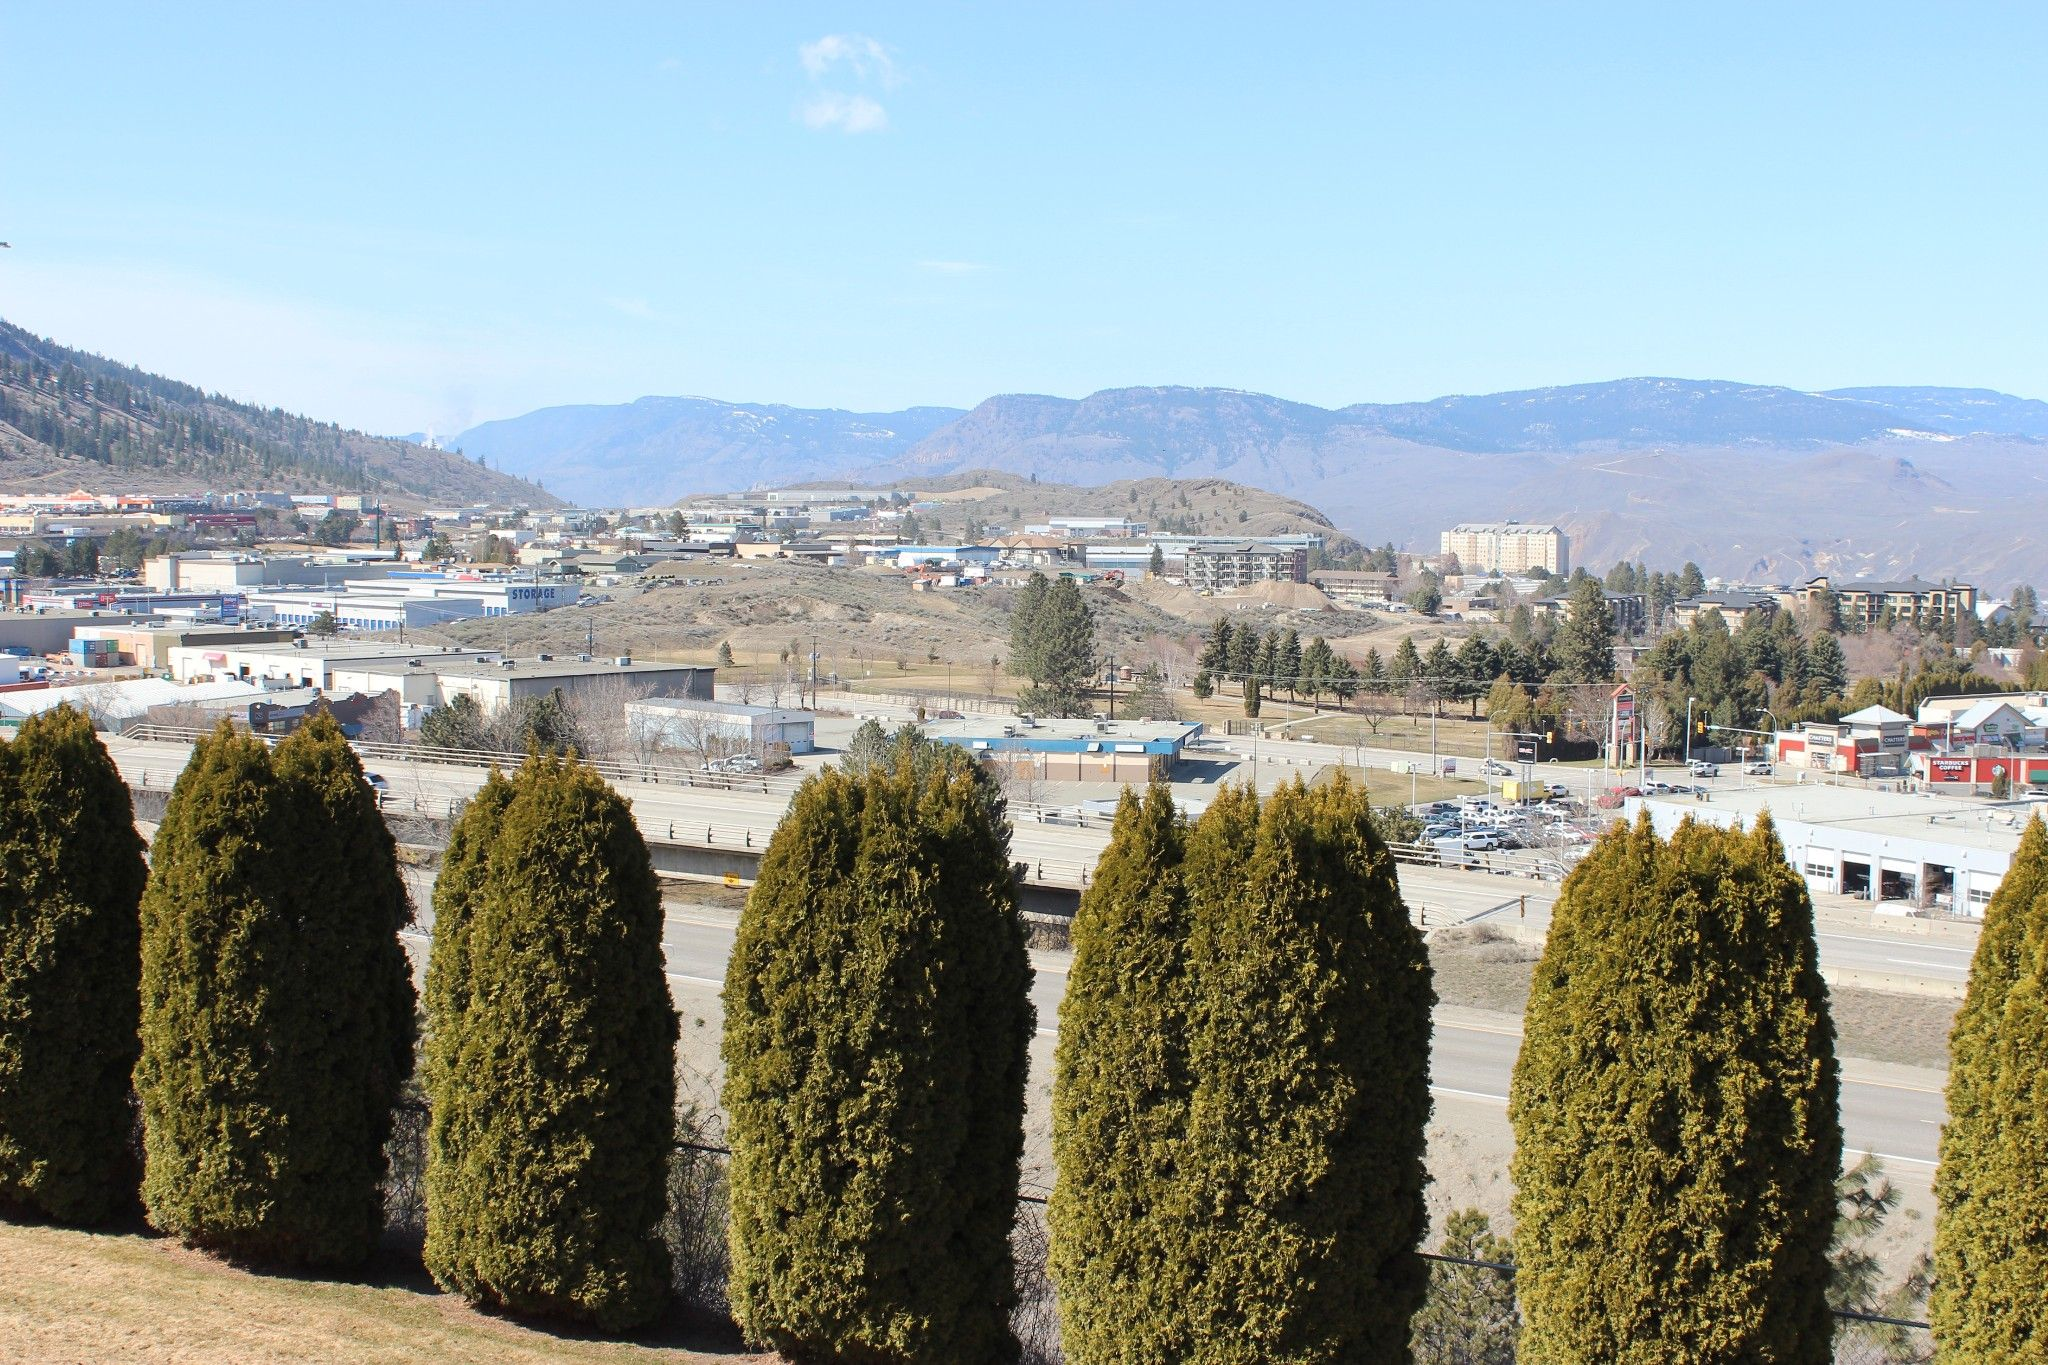 Photo 20: Photos: 4 1580 Springhill Drive in Kamloops: Sahali Townhouse for sale : MLS®# 156043